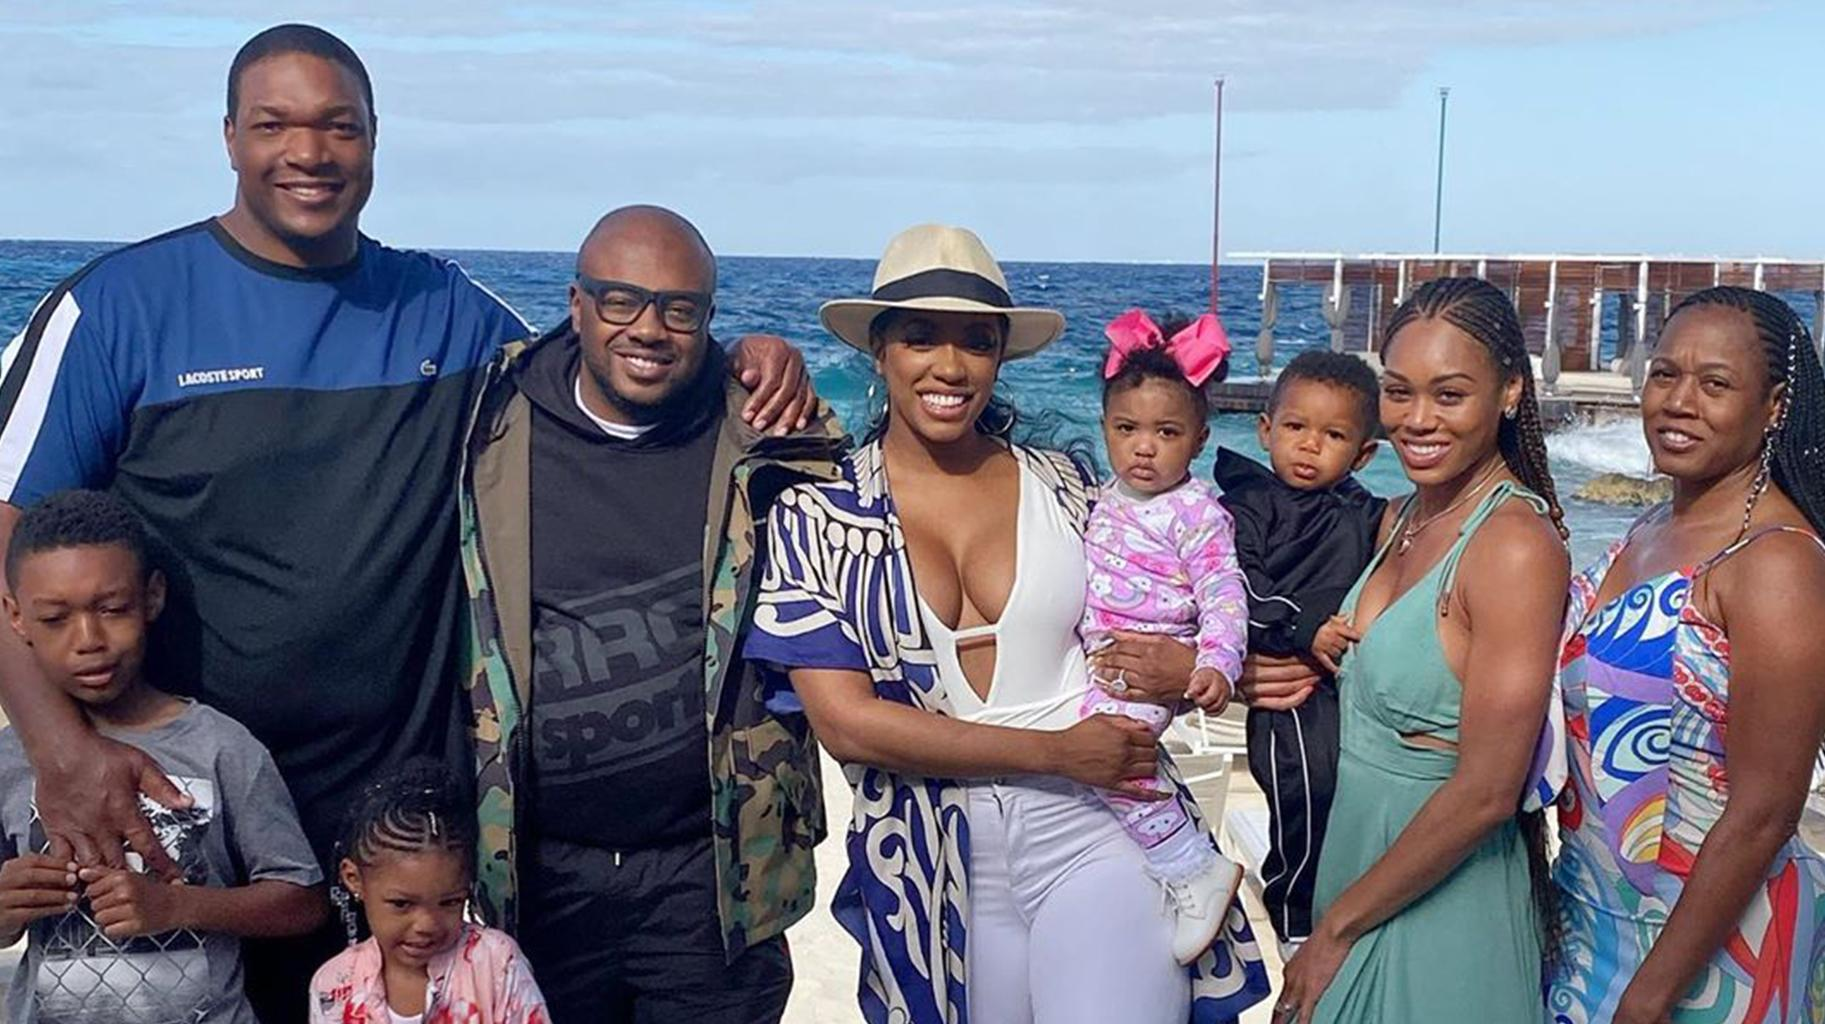 Porsha Williams Discusses Growing Up In A Civil Rights Family - Fans Says That Baby Porsha Is Twinning With Pilar Jhena